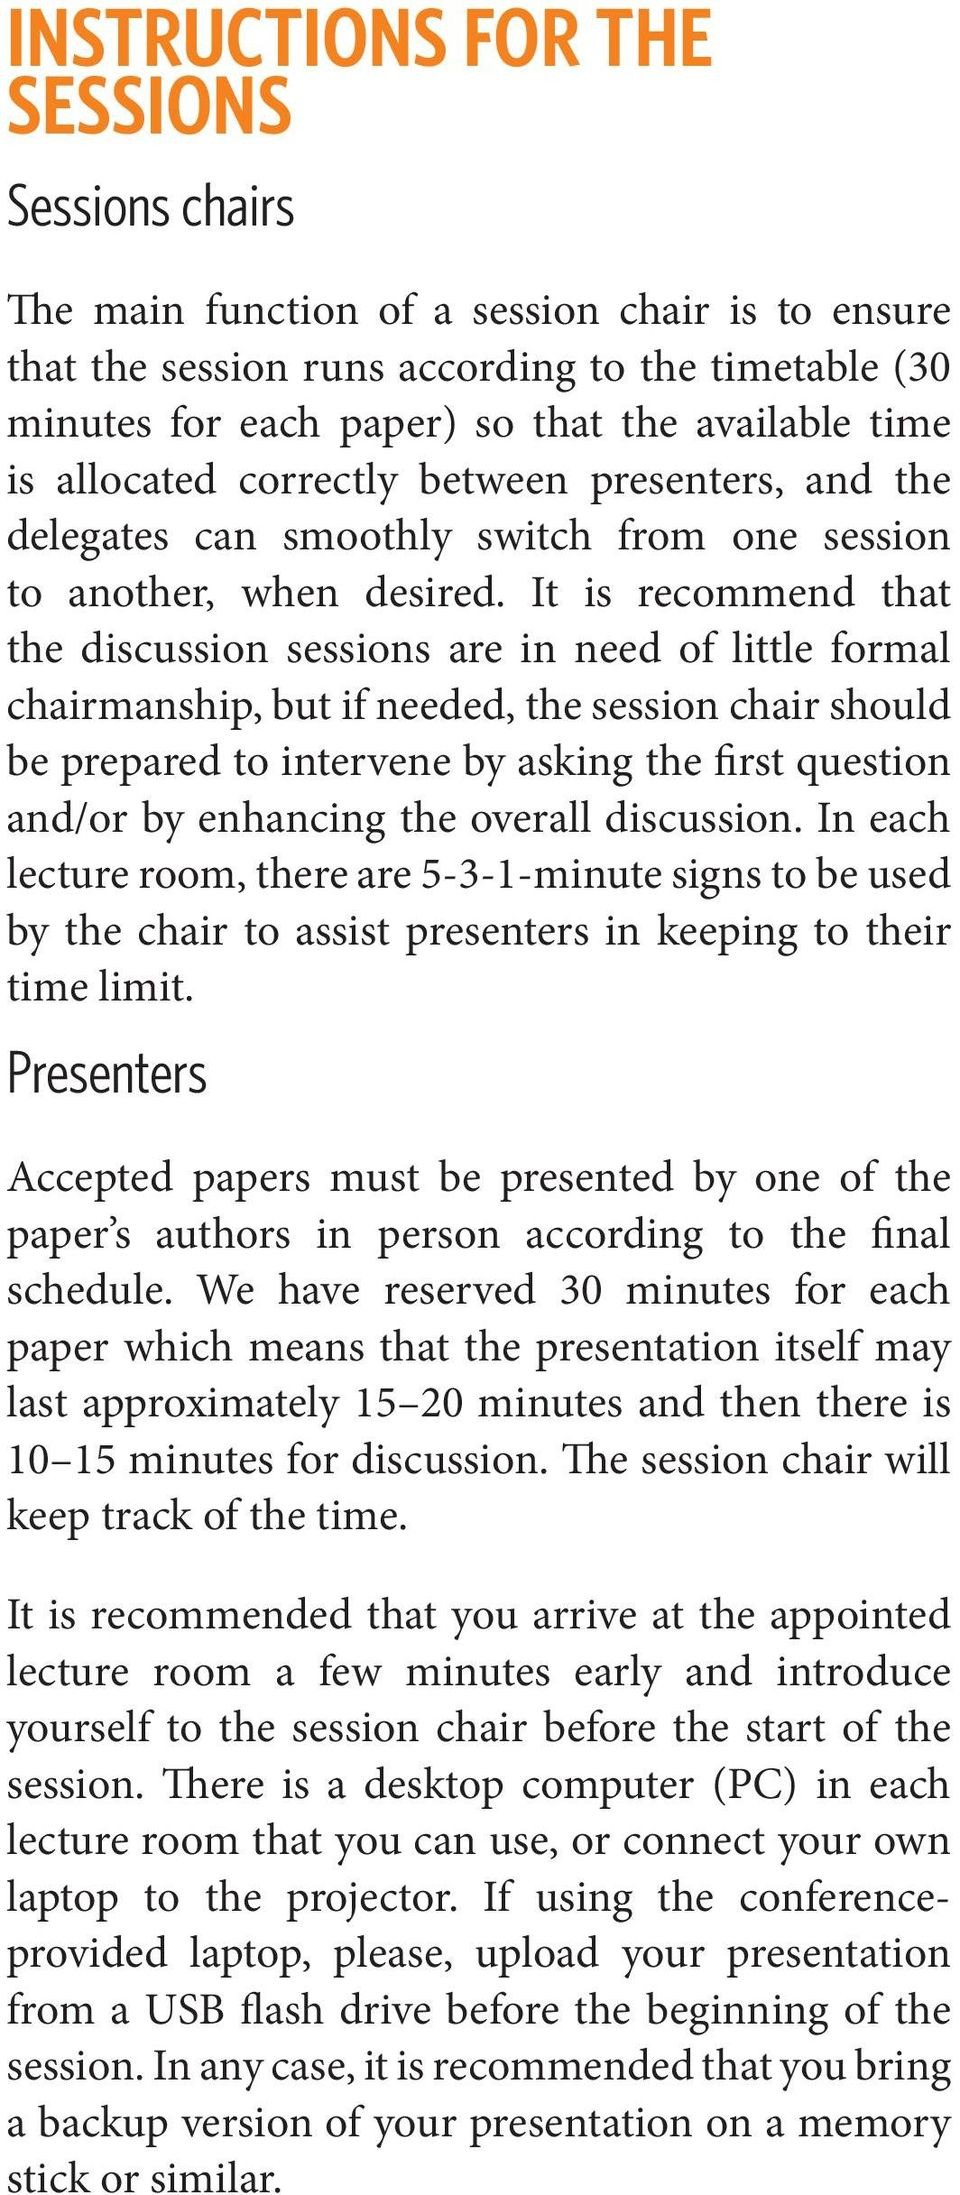 It is recommend that the discussion sessions are in need of little formal chairmanship, but if needed, the session chair should be prepared to intervene by asking the first question and/or by